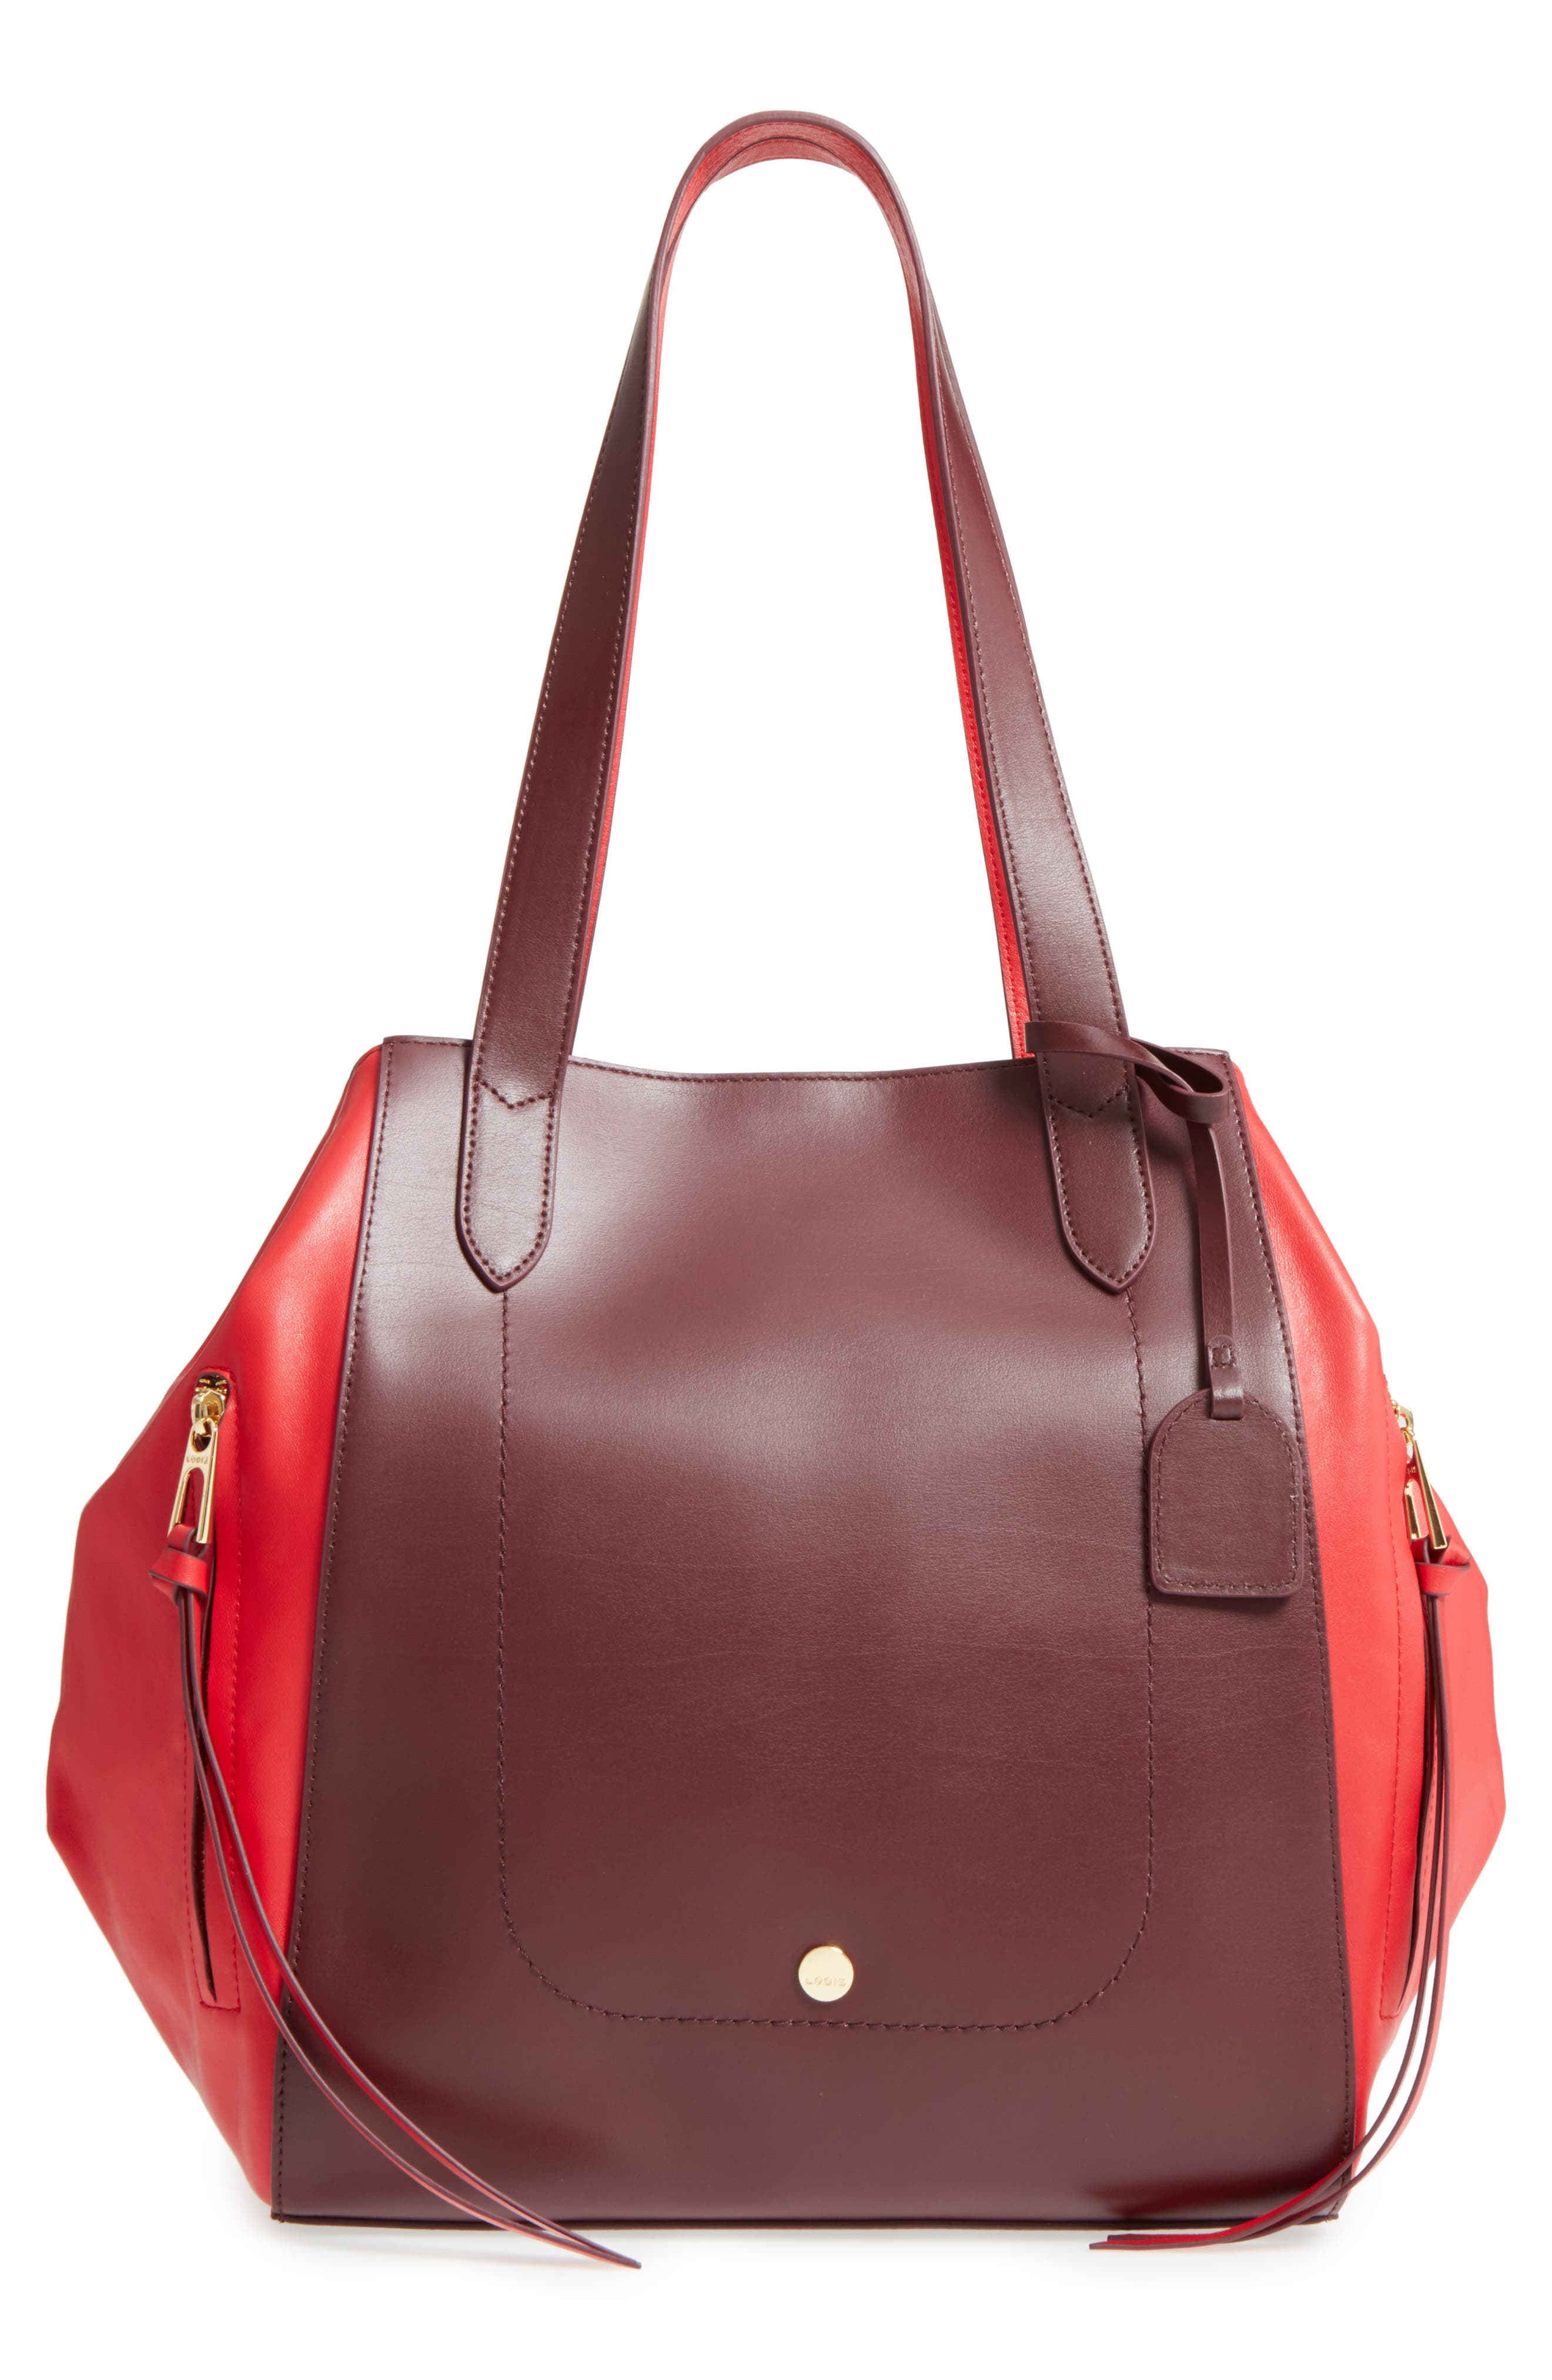 Downtown Charlize RFID Leather Tote,                             Main thumbnail 1, color,                             Red/ Chianti